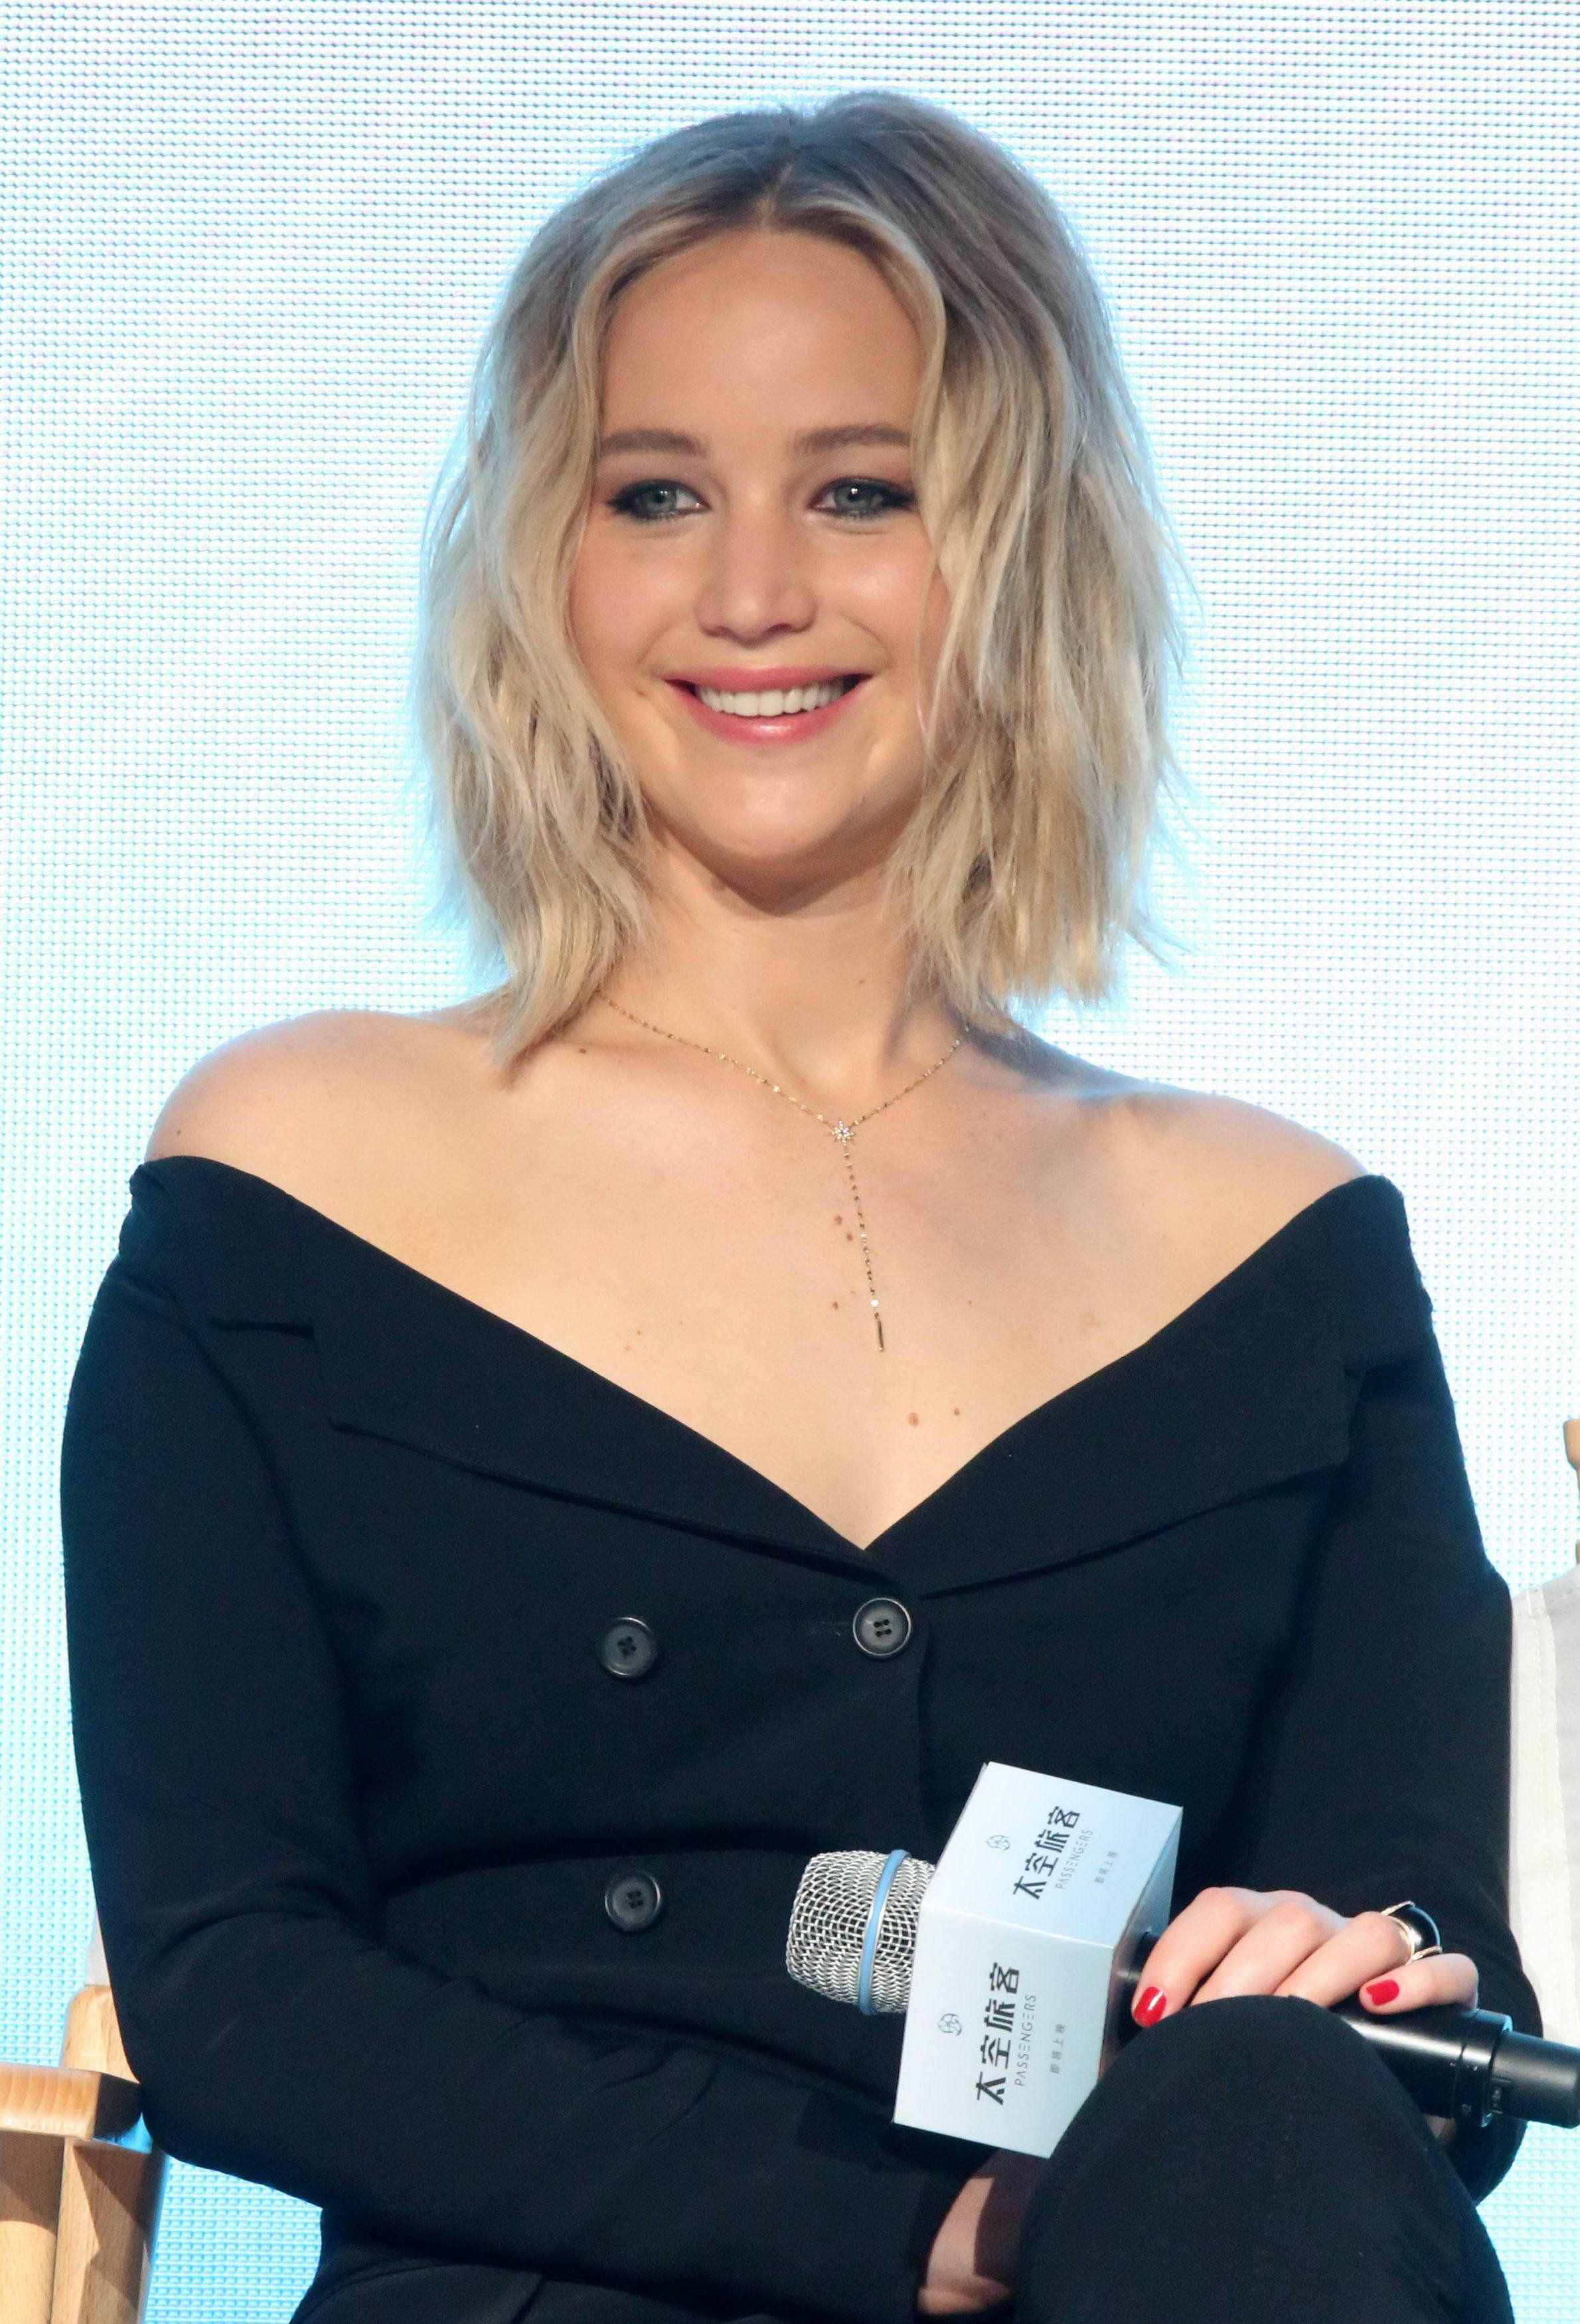 BEIJING, CHINA - DECEMBER 17:  American actress Jennifer Lawrence attends the press conference of director Morten Tyldum's film 'Passengers' on December 17, 2016 in Beijing, China.  (Photo by VCG/VCG via Getty Images)